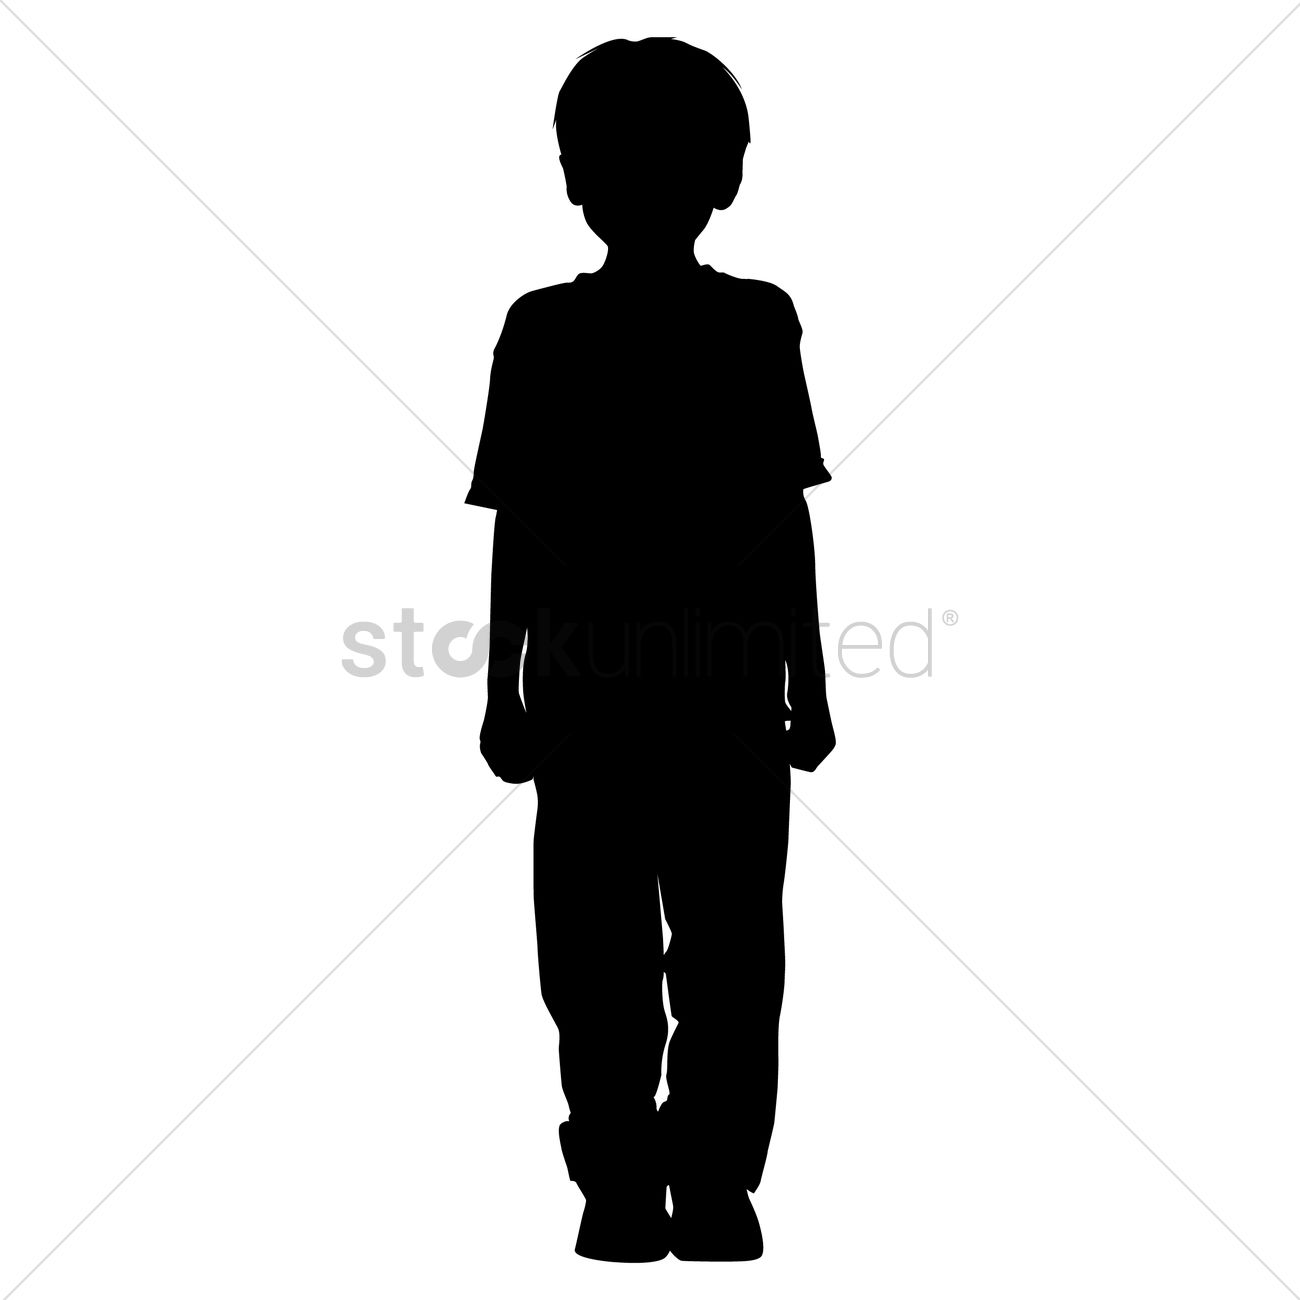 Person Standing Silhouette Vector | www.imgkid.com - The ...